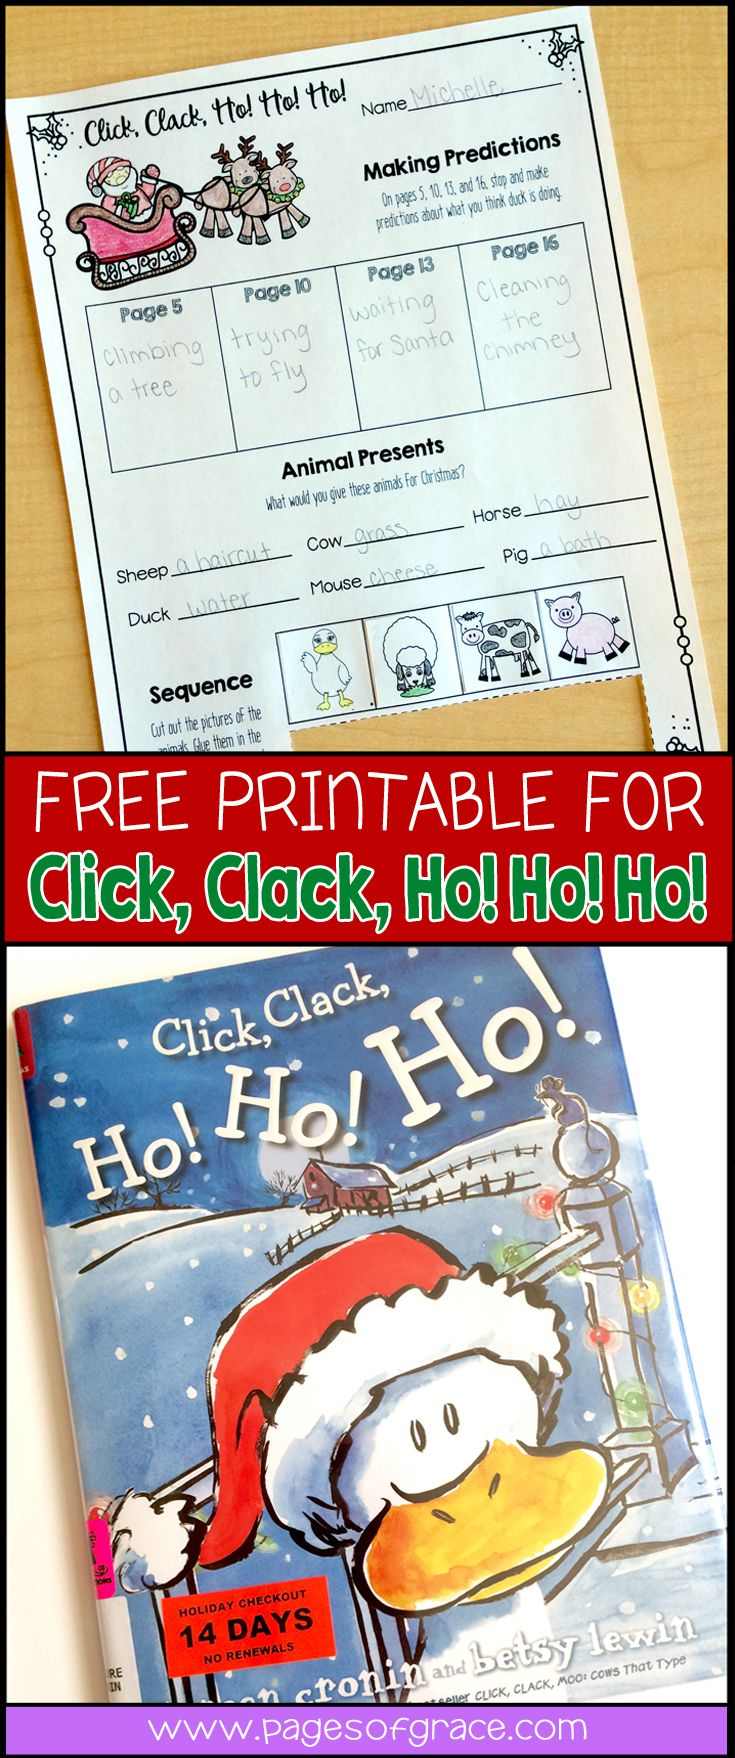 Add some fun to your Christmas read aloud time with this free printable for the funny book, Click Clack Ho Ho Ho! It includes 3 engaging activities that your students will love! Great for advanced preschool, kindergarten, and first grade kids.